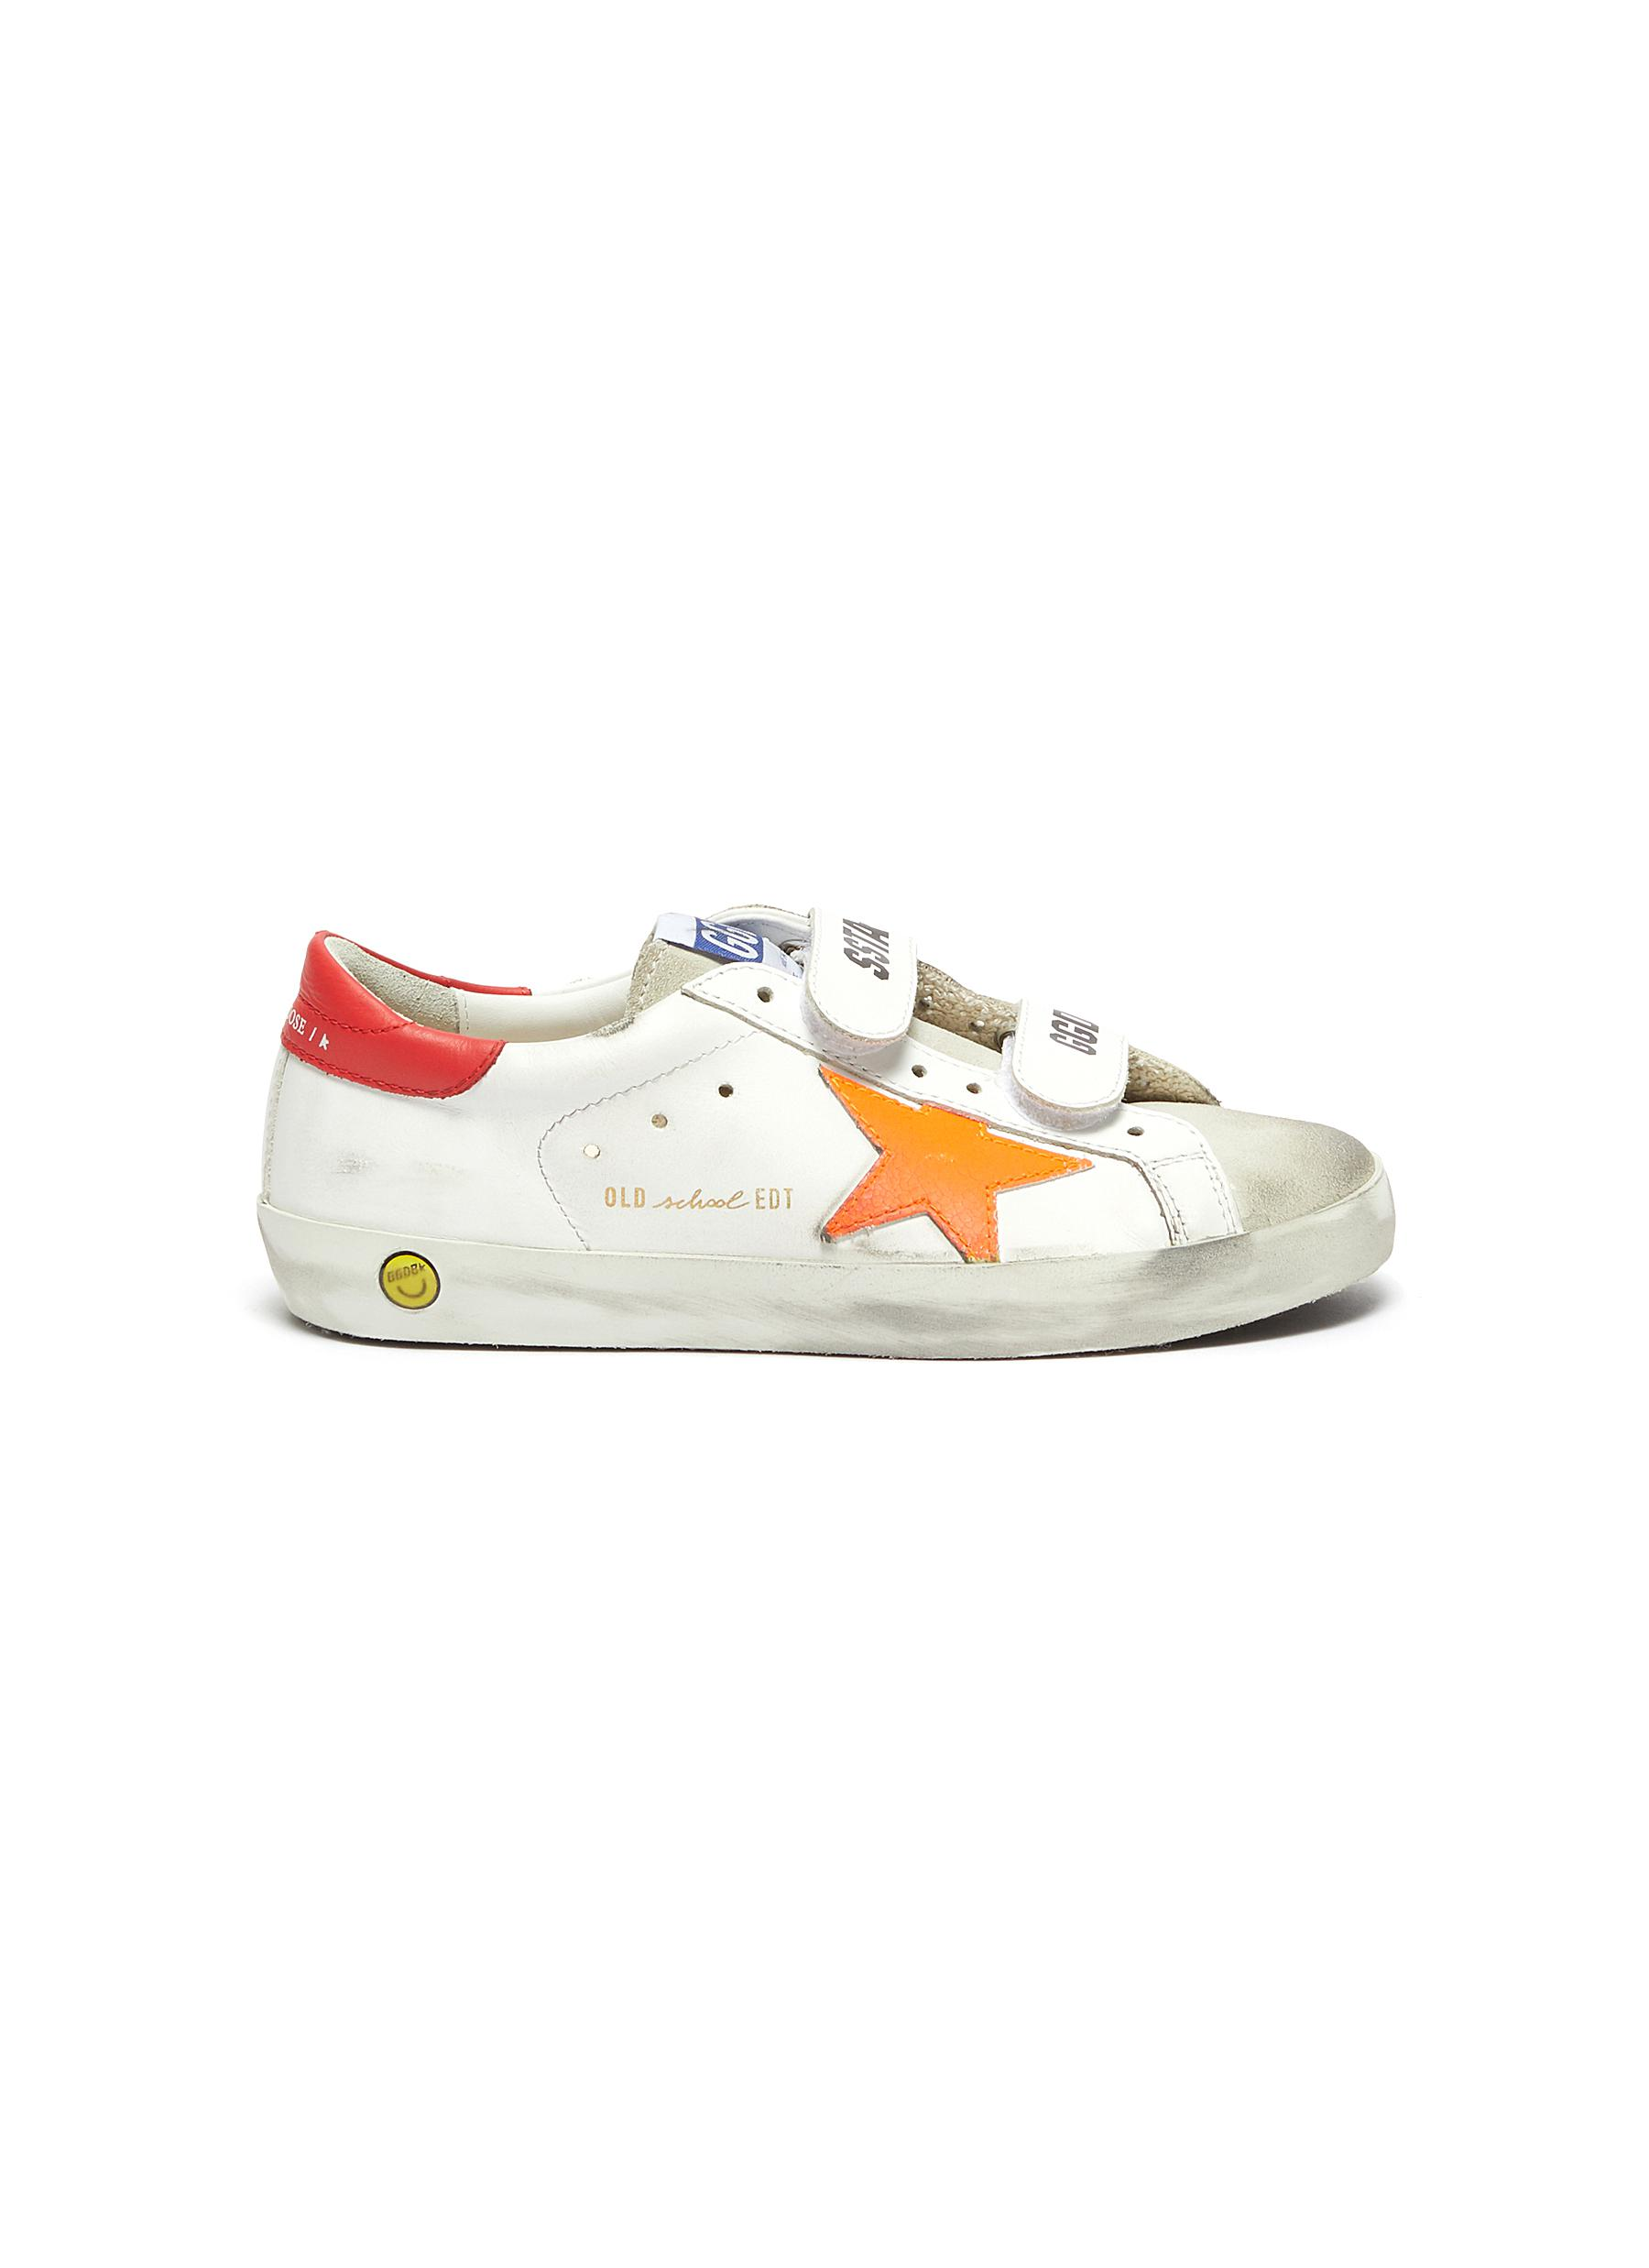 'Old School' Contrast Accent Distressed Kids Leather Sneakers